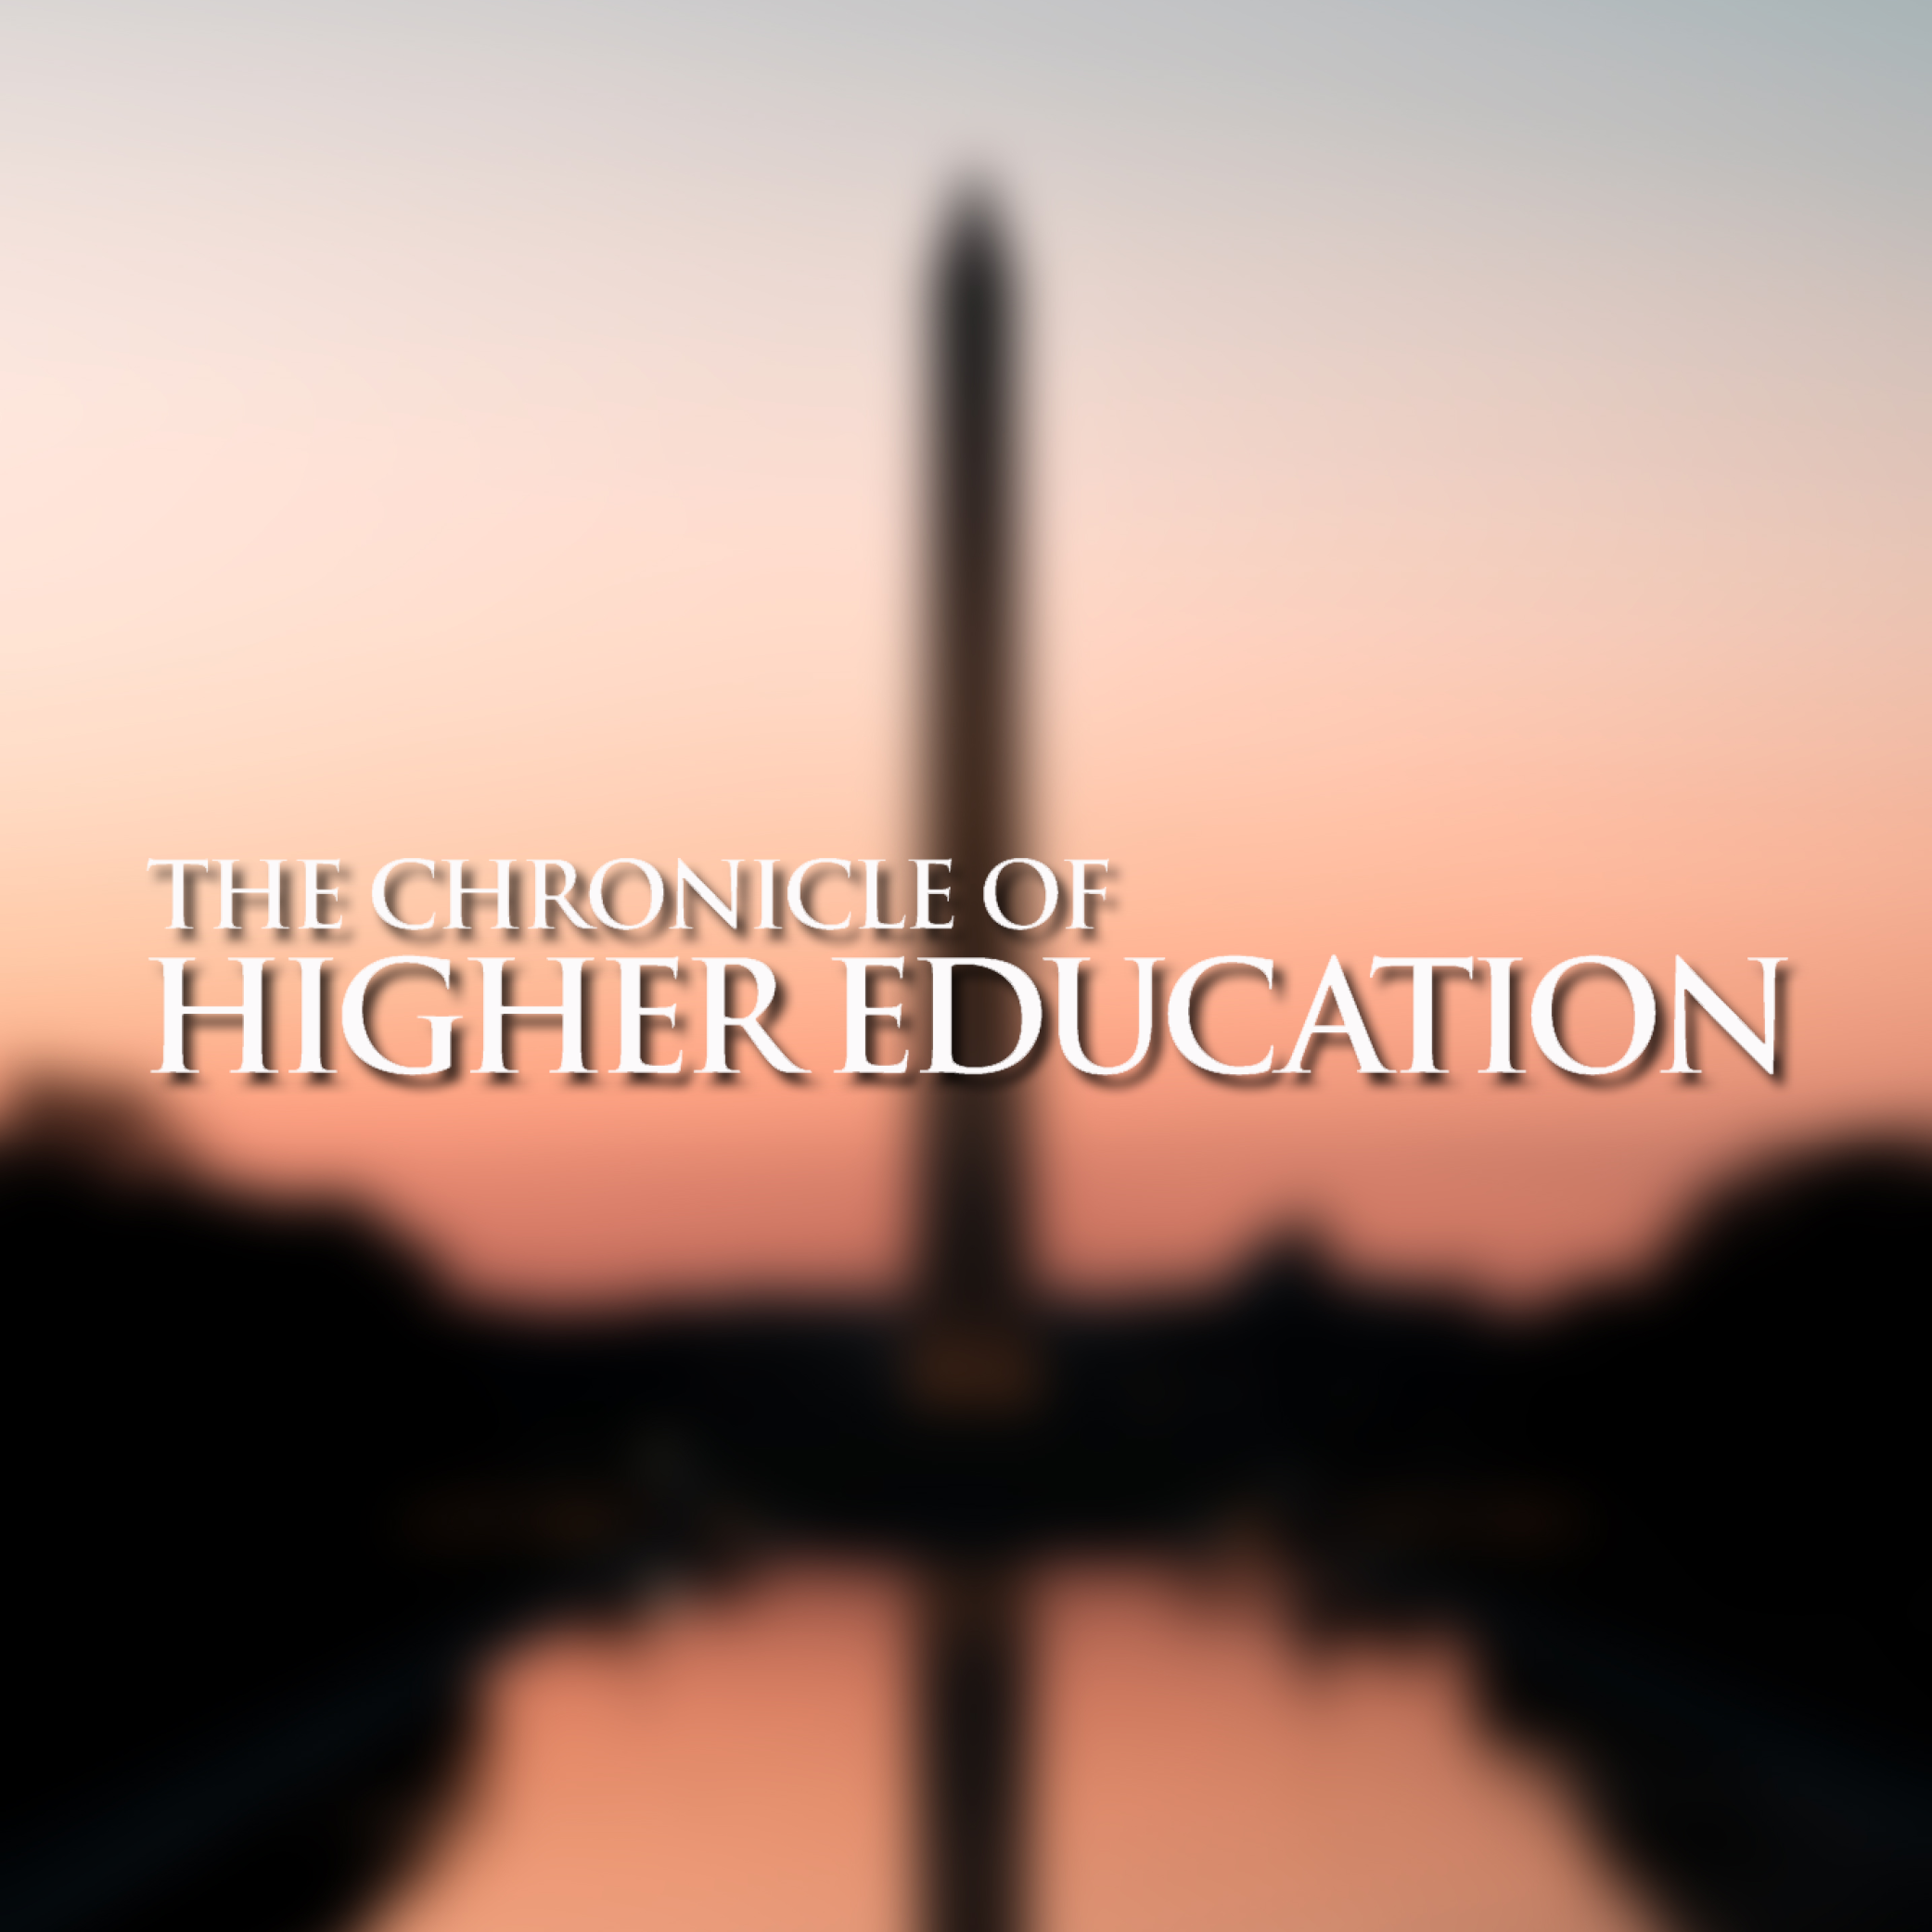 Chronical of Higher Education